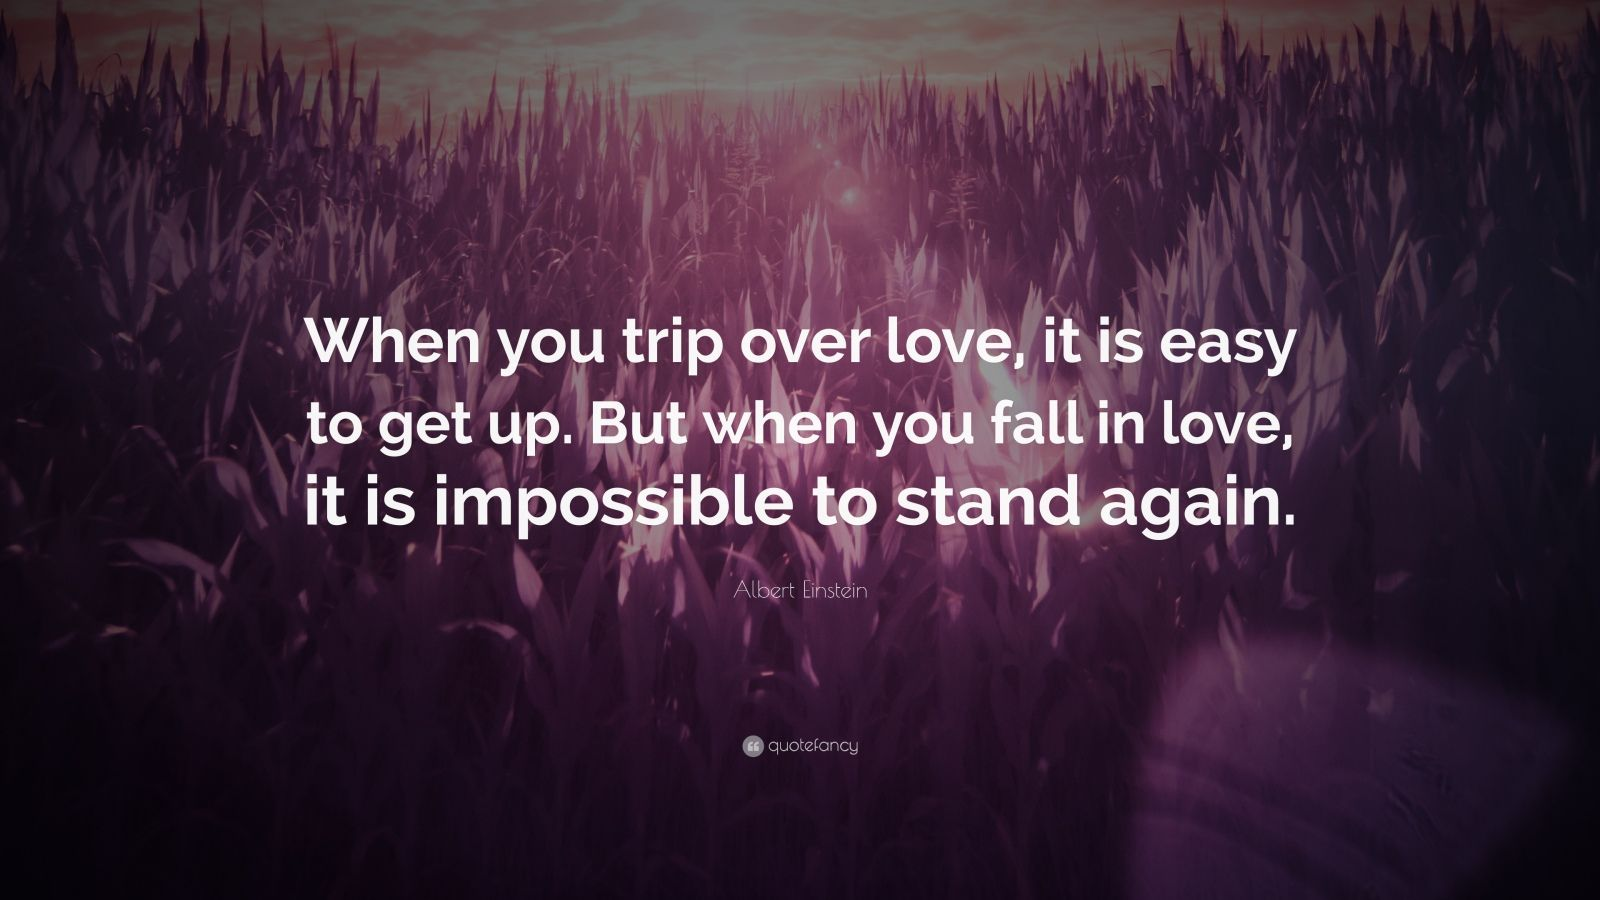 """Albert Einstein Quote: """"When you trip over love, it is easy to get up. But when you fall in love, it is impossible to stand again."""""""